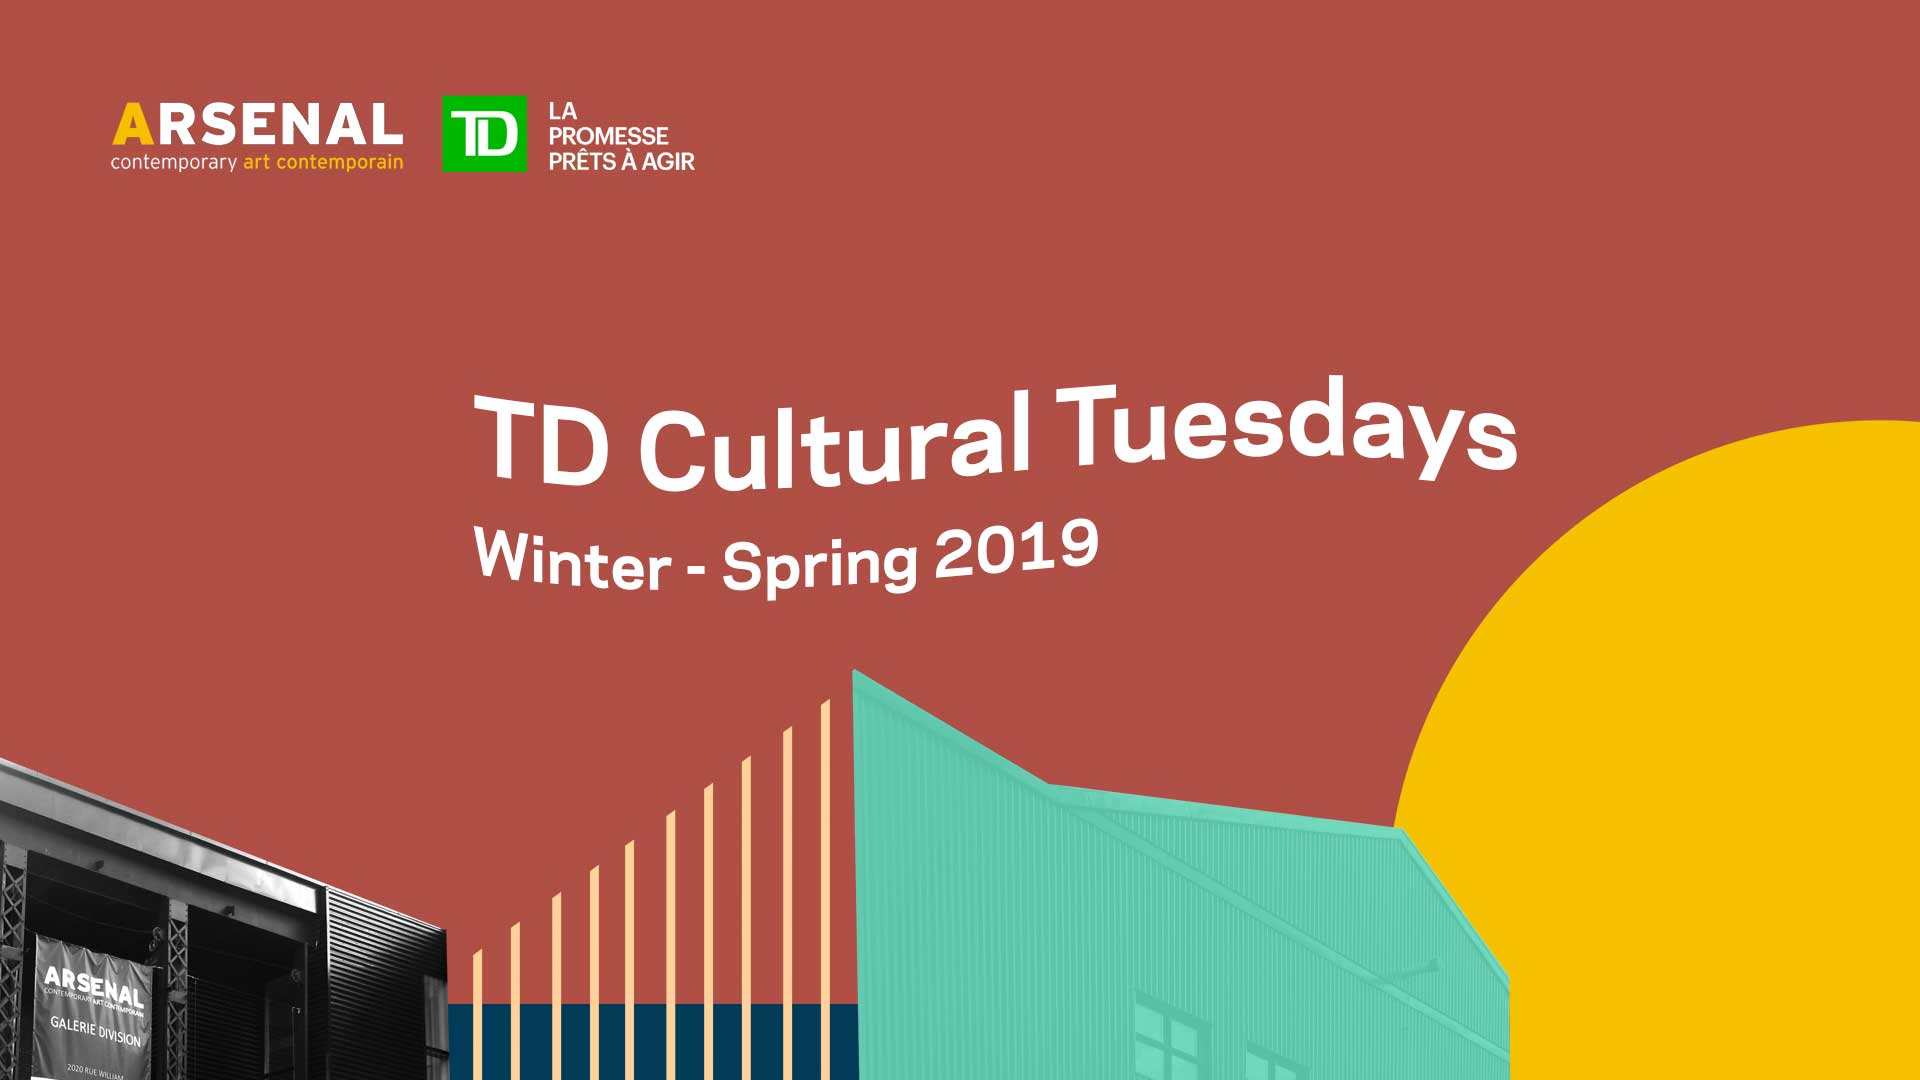 mctd-launch-of-the-td-cultural-tuesdays-programming-winter-spring-2019.jpg